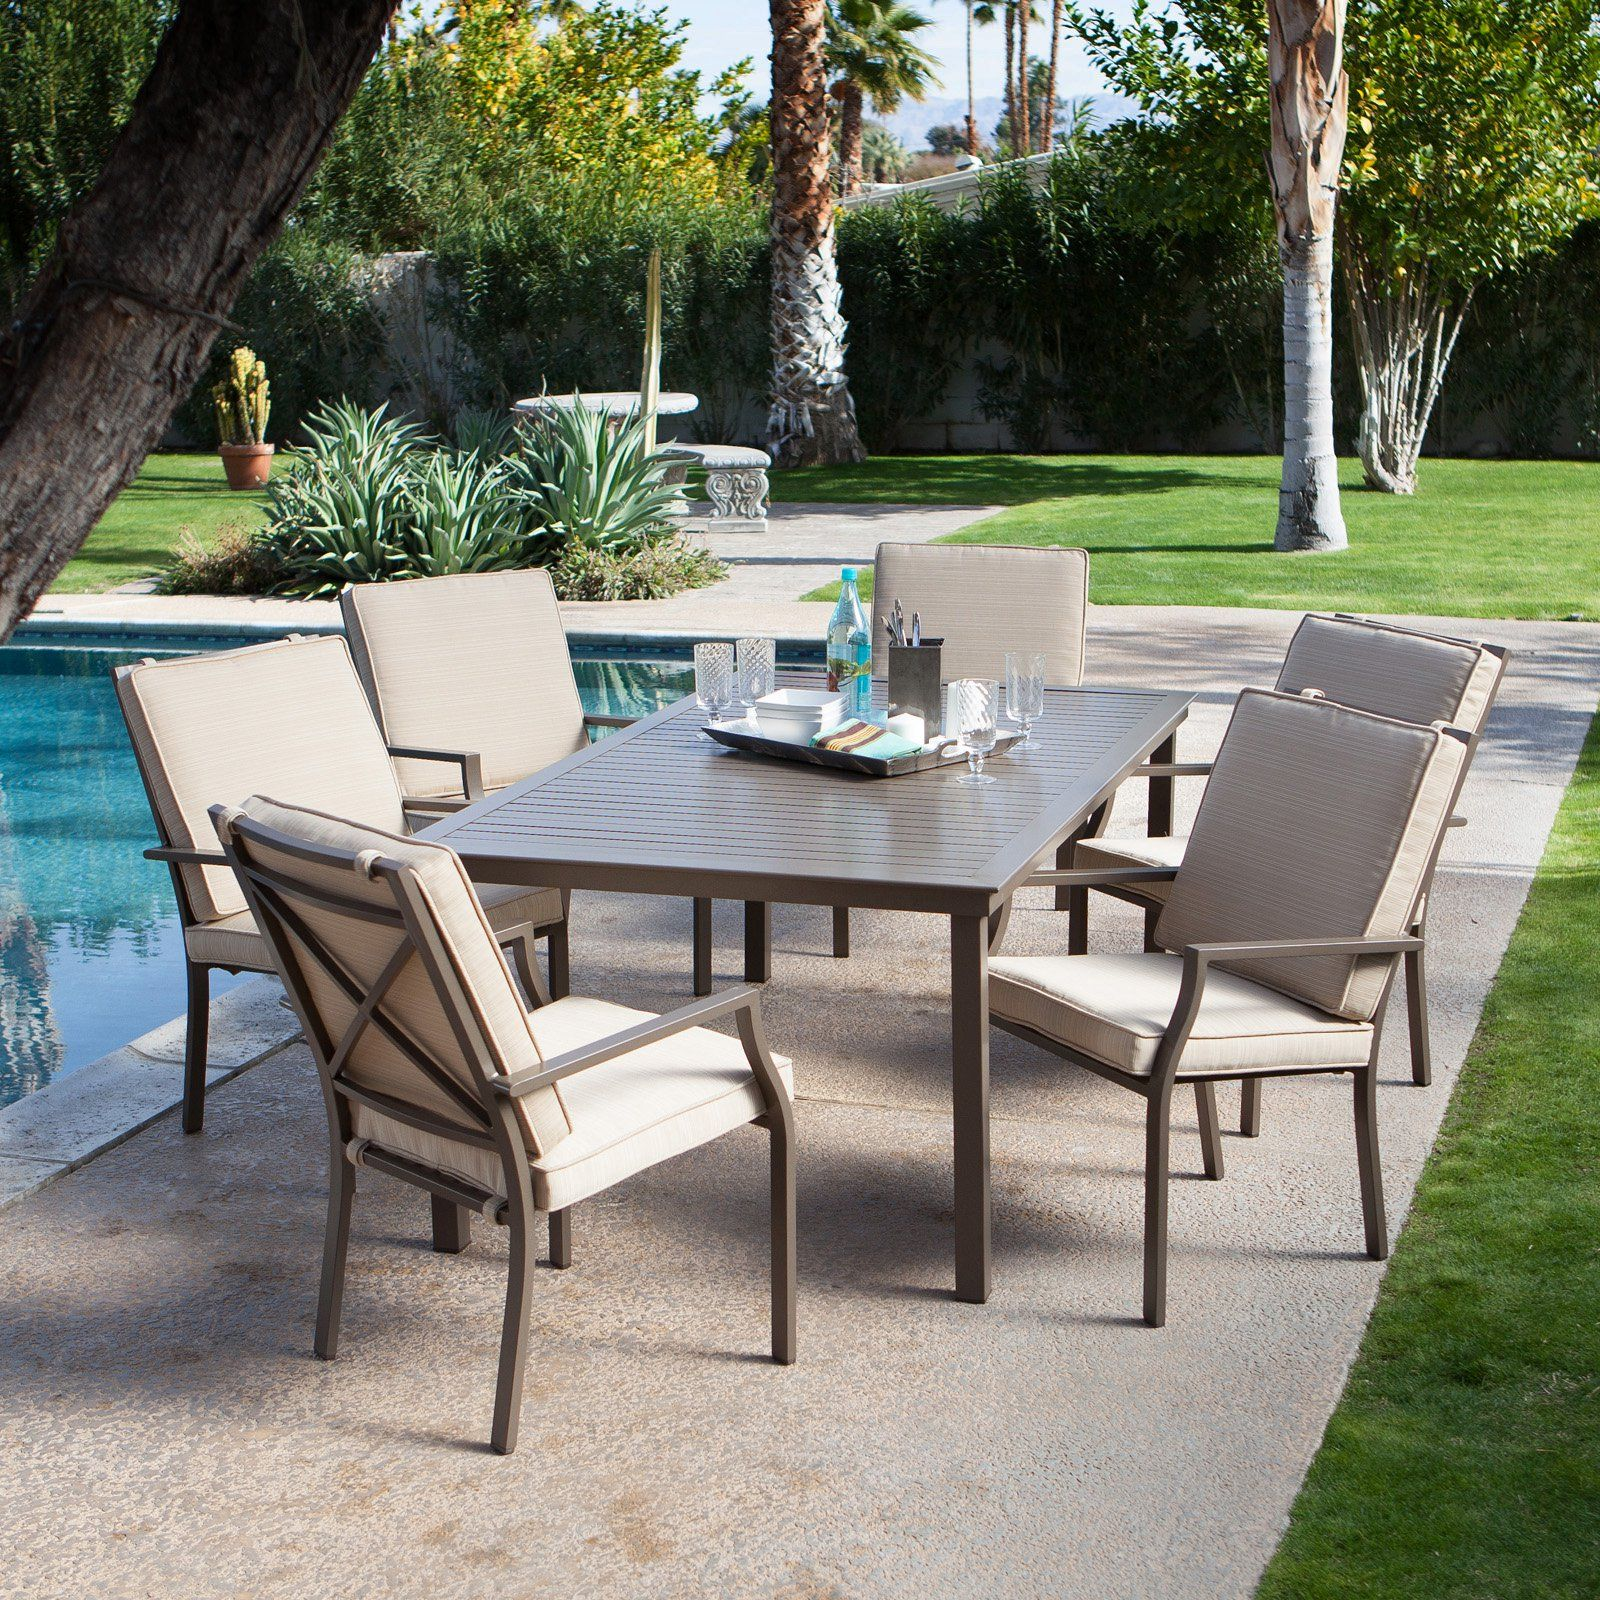 C Coast Bellagio Cushioned Aluminum Patio Dining Set Seats 6 There S Not A Bad Seat In The House Or Out Of When You Re Sitting